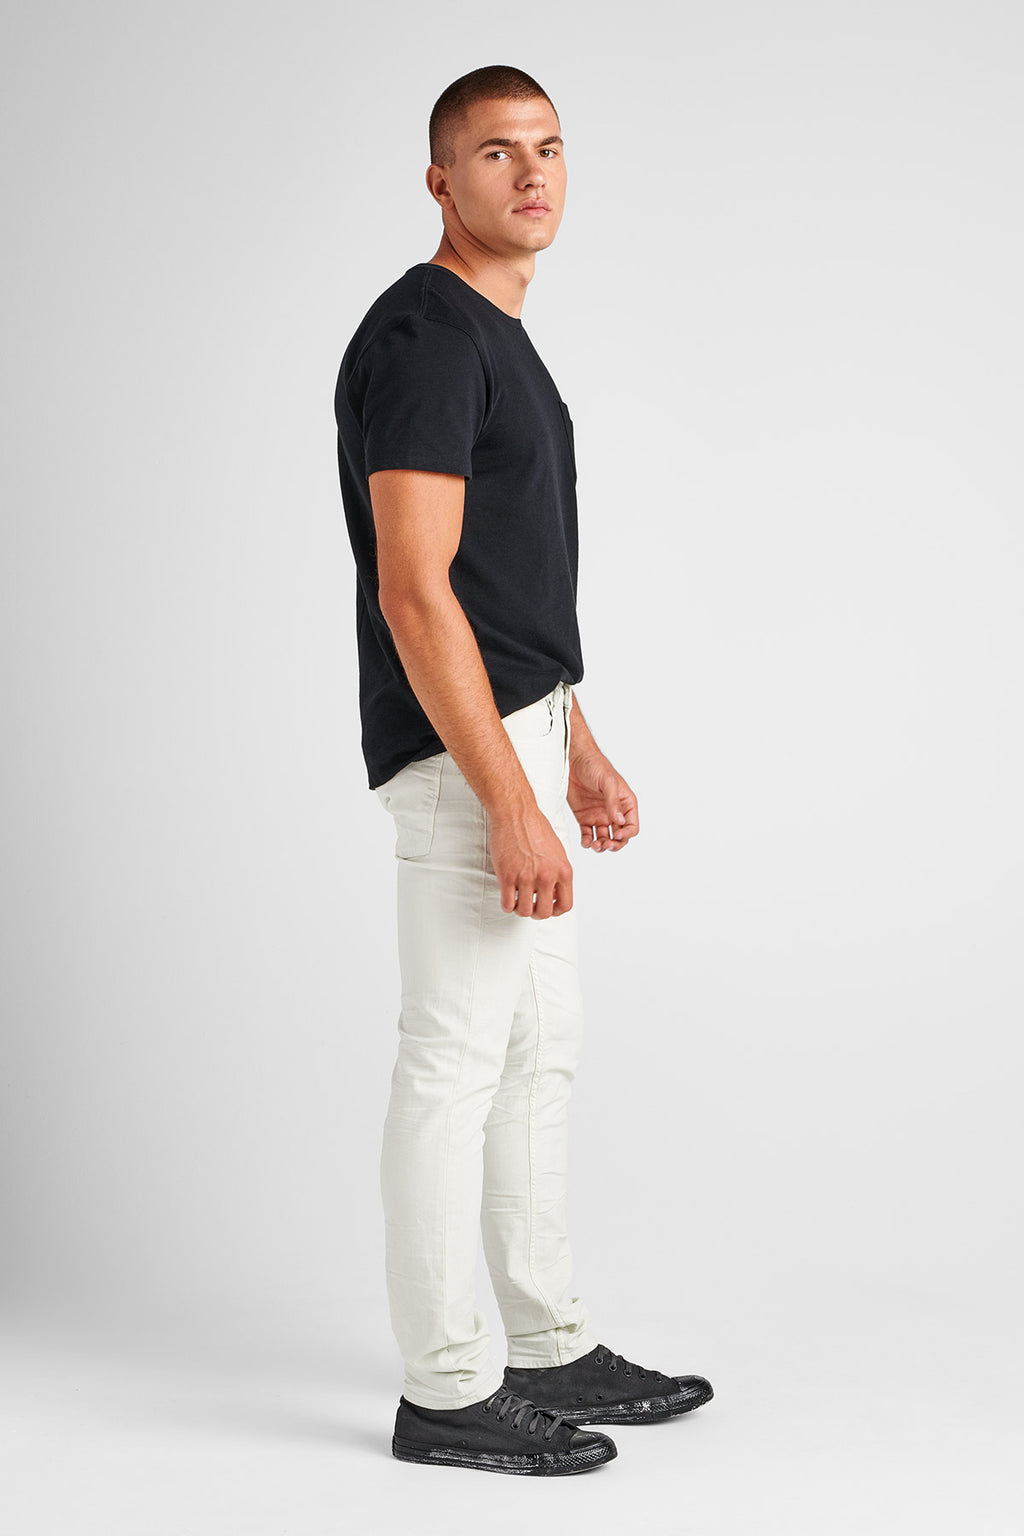 AXL SKINNY TWILL JEAN - DIRTY WHITE - Image 2